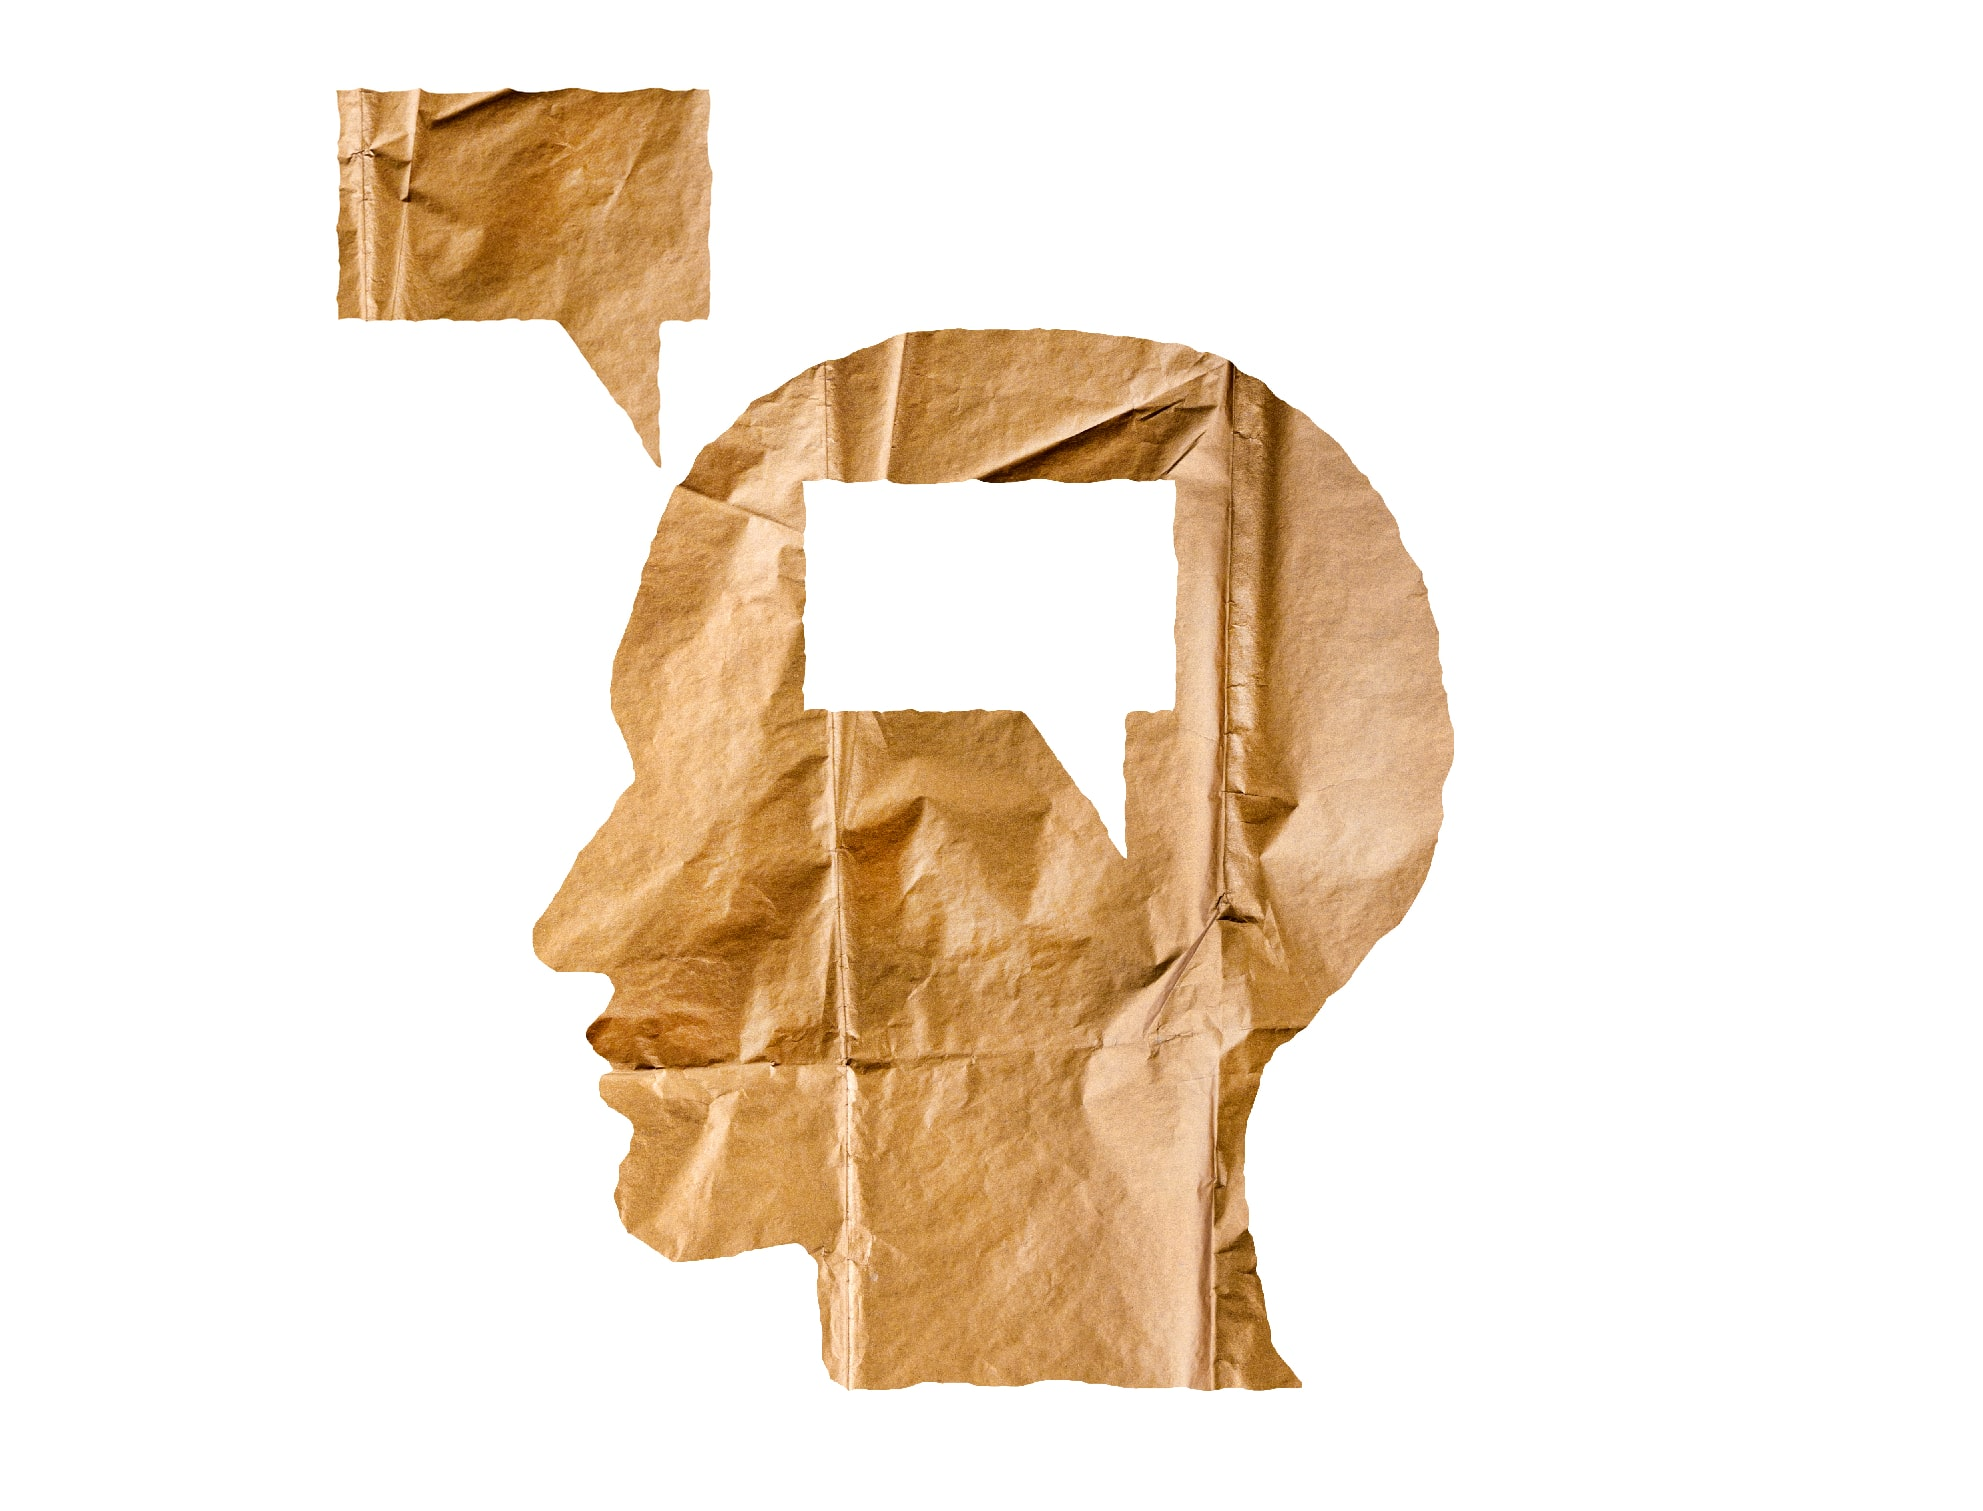 Crumpled paper shaped as a human head and talk balloon on white.